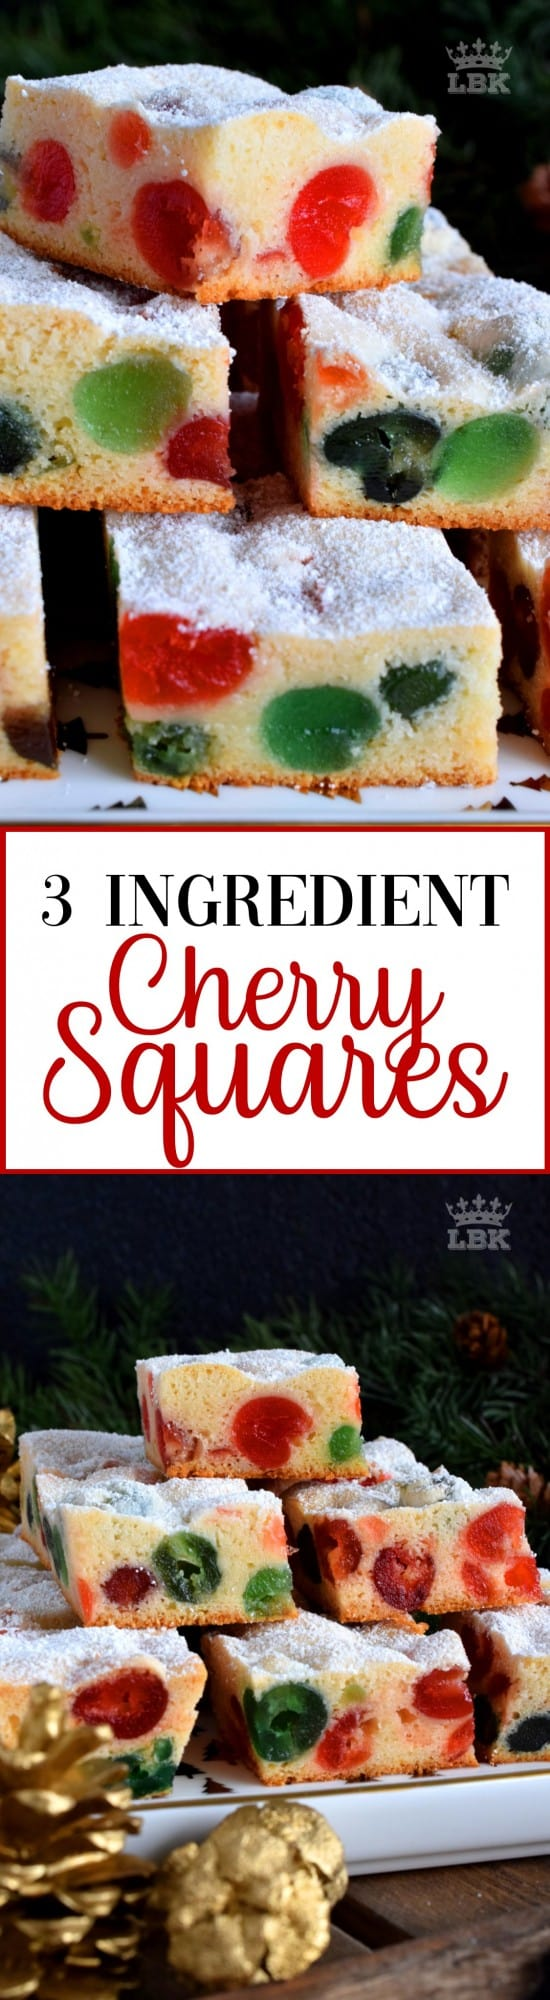 Sometimes are recipe needs to be quick and easy.  3 Ingredient Cherry Squares are just that, but they are also pretty to look at and delicious too!#3 #ingredient #squares #candied #cherries #christmas #holiday #baking